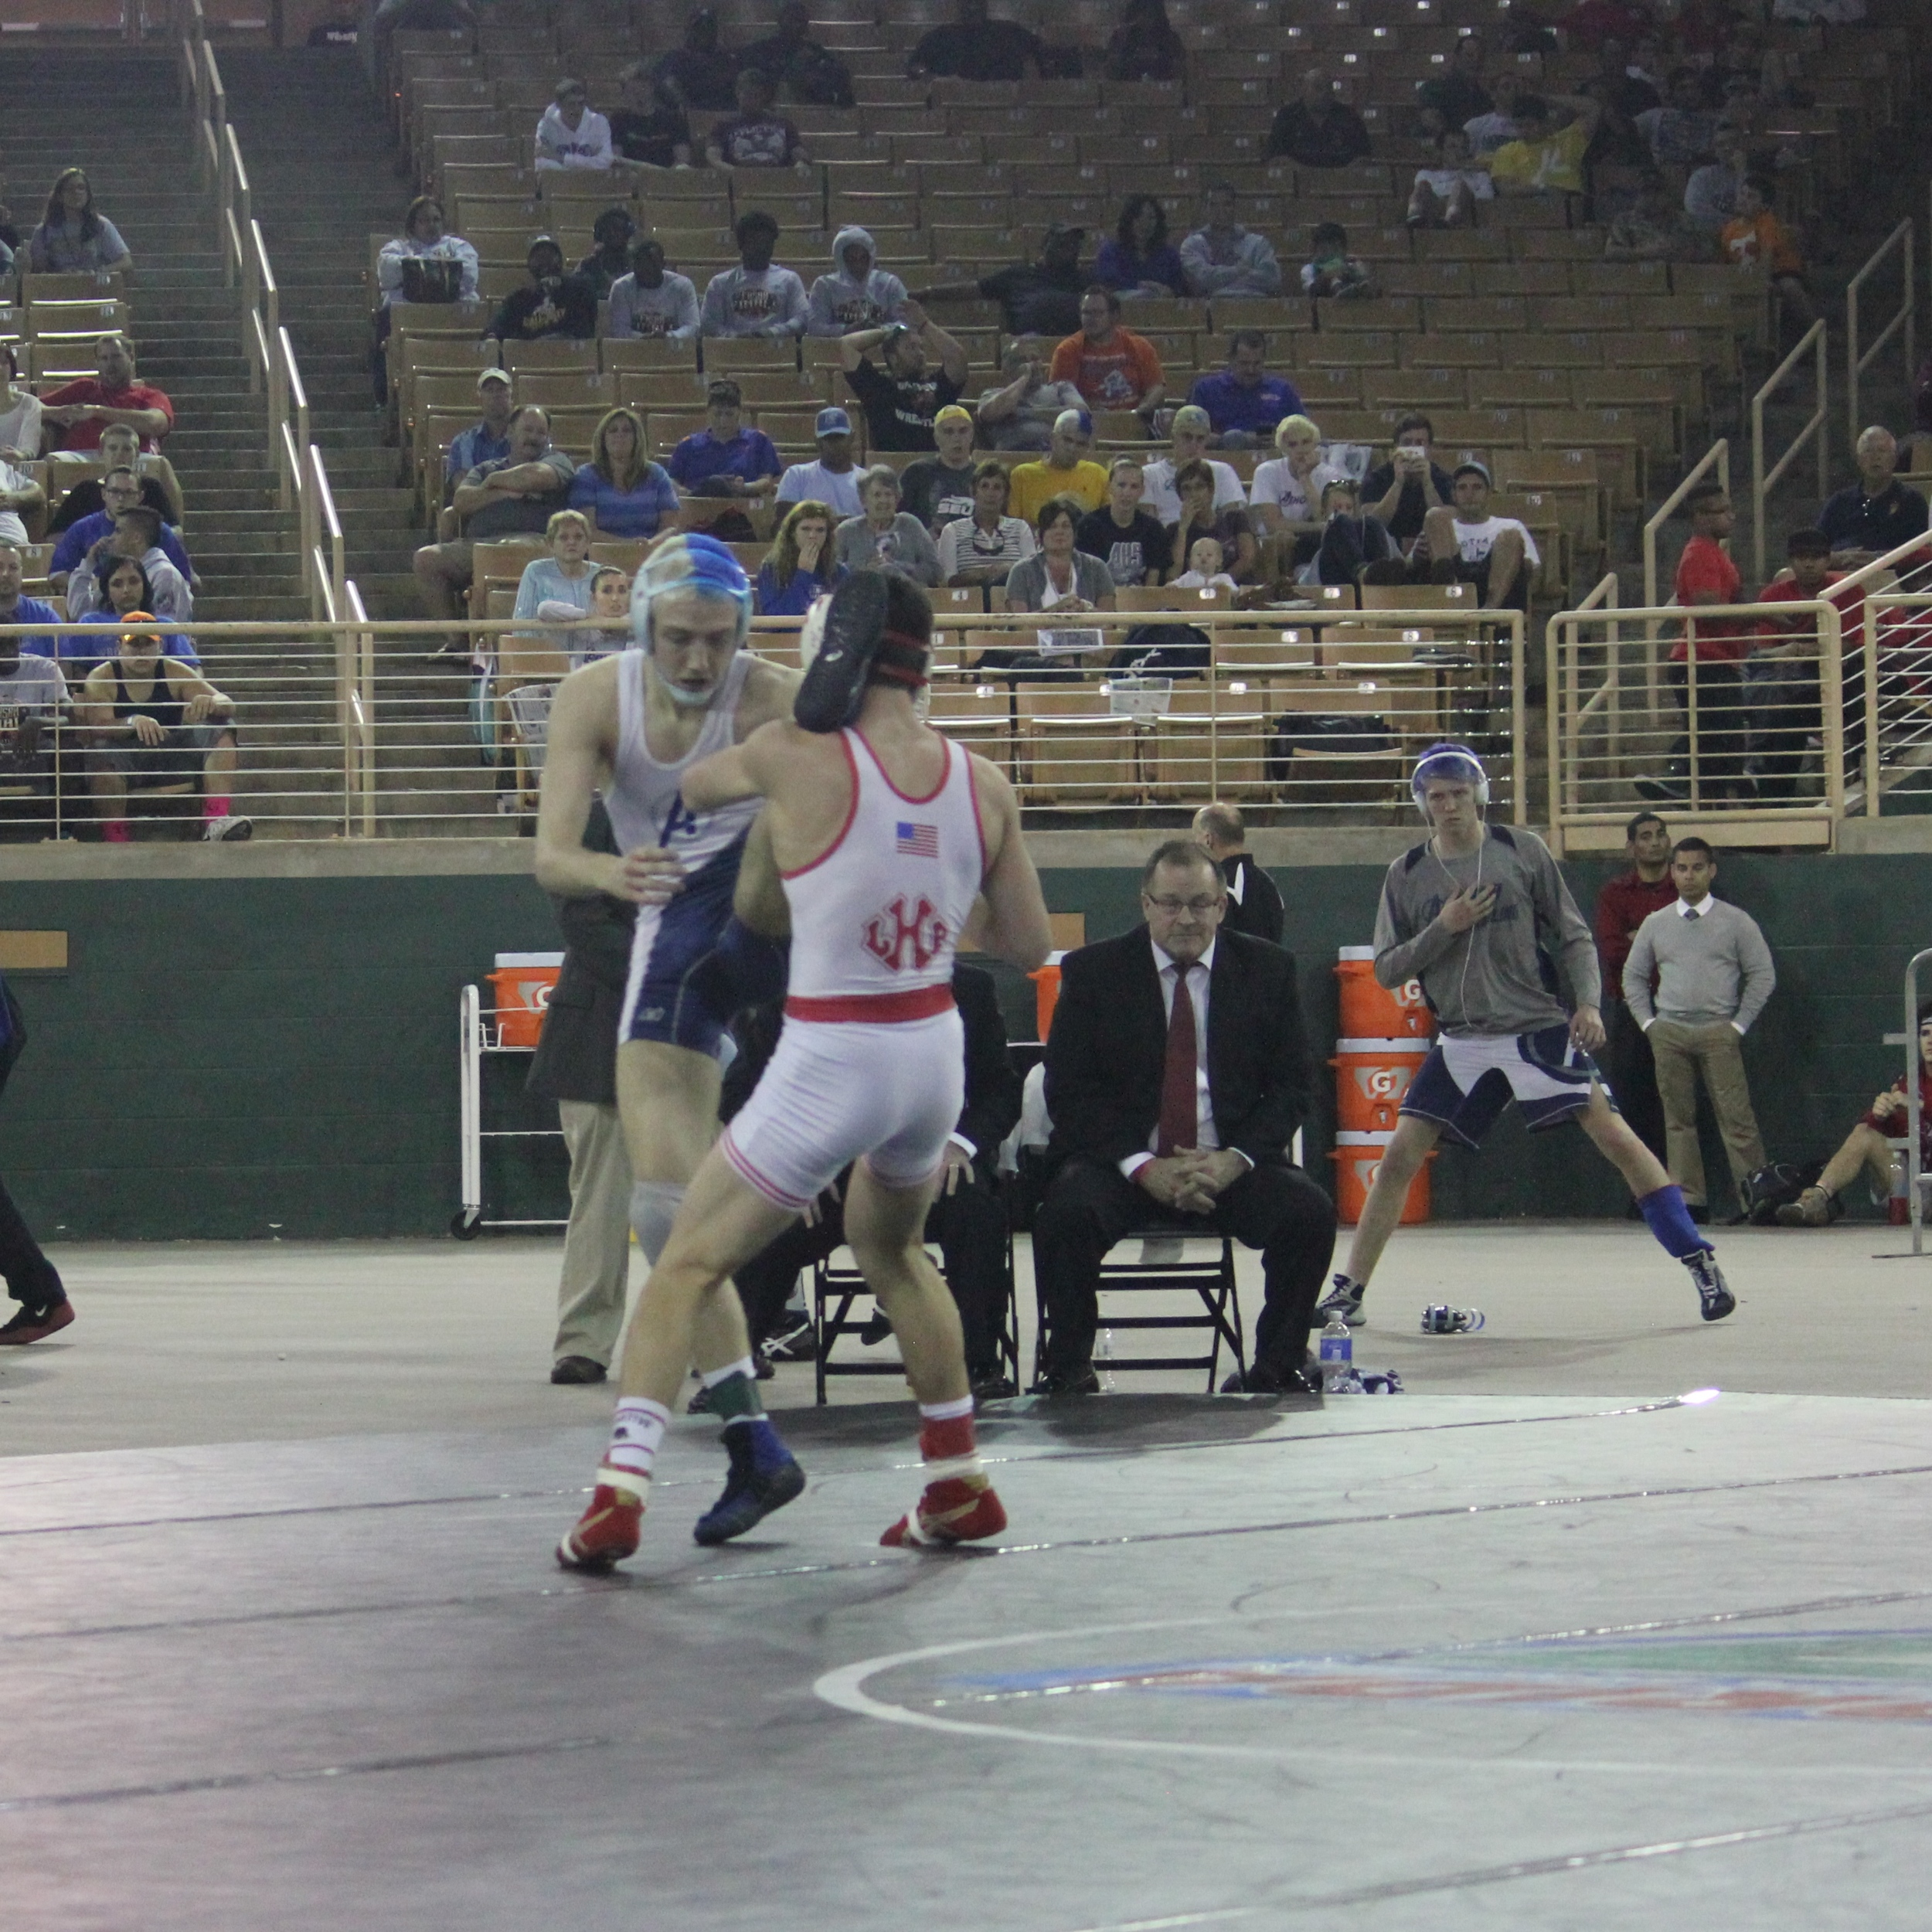 McClanahan beat Brindley 4-3 to win the 2015 1A 126 lb.title